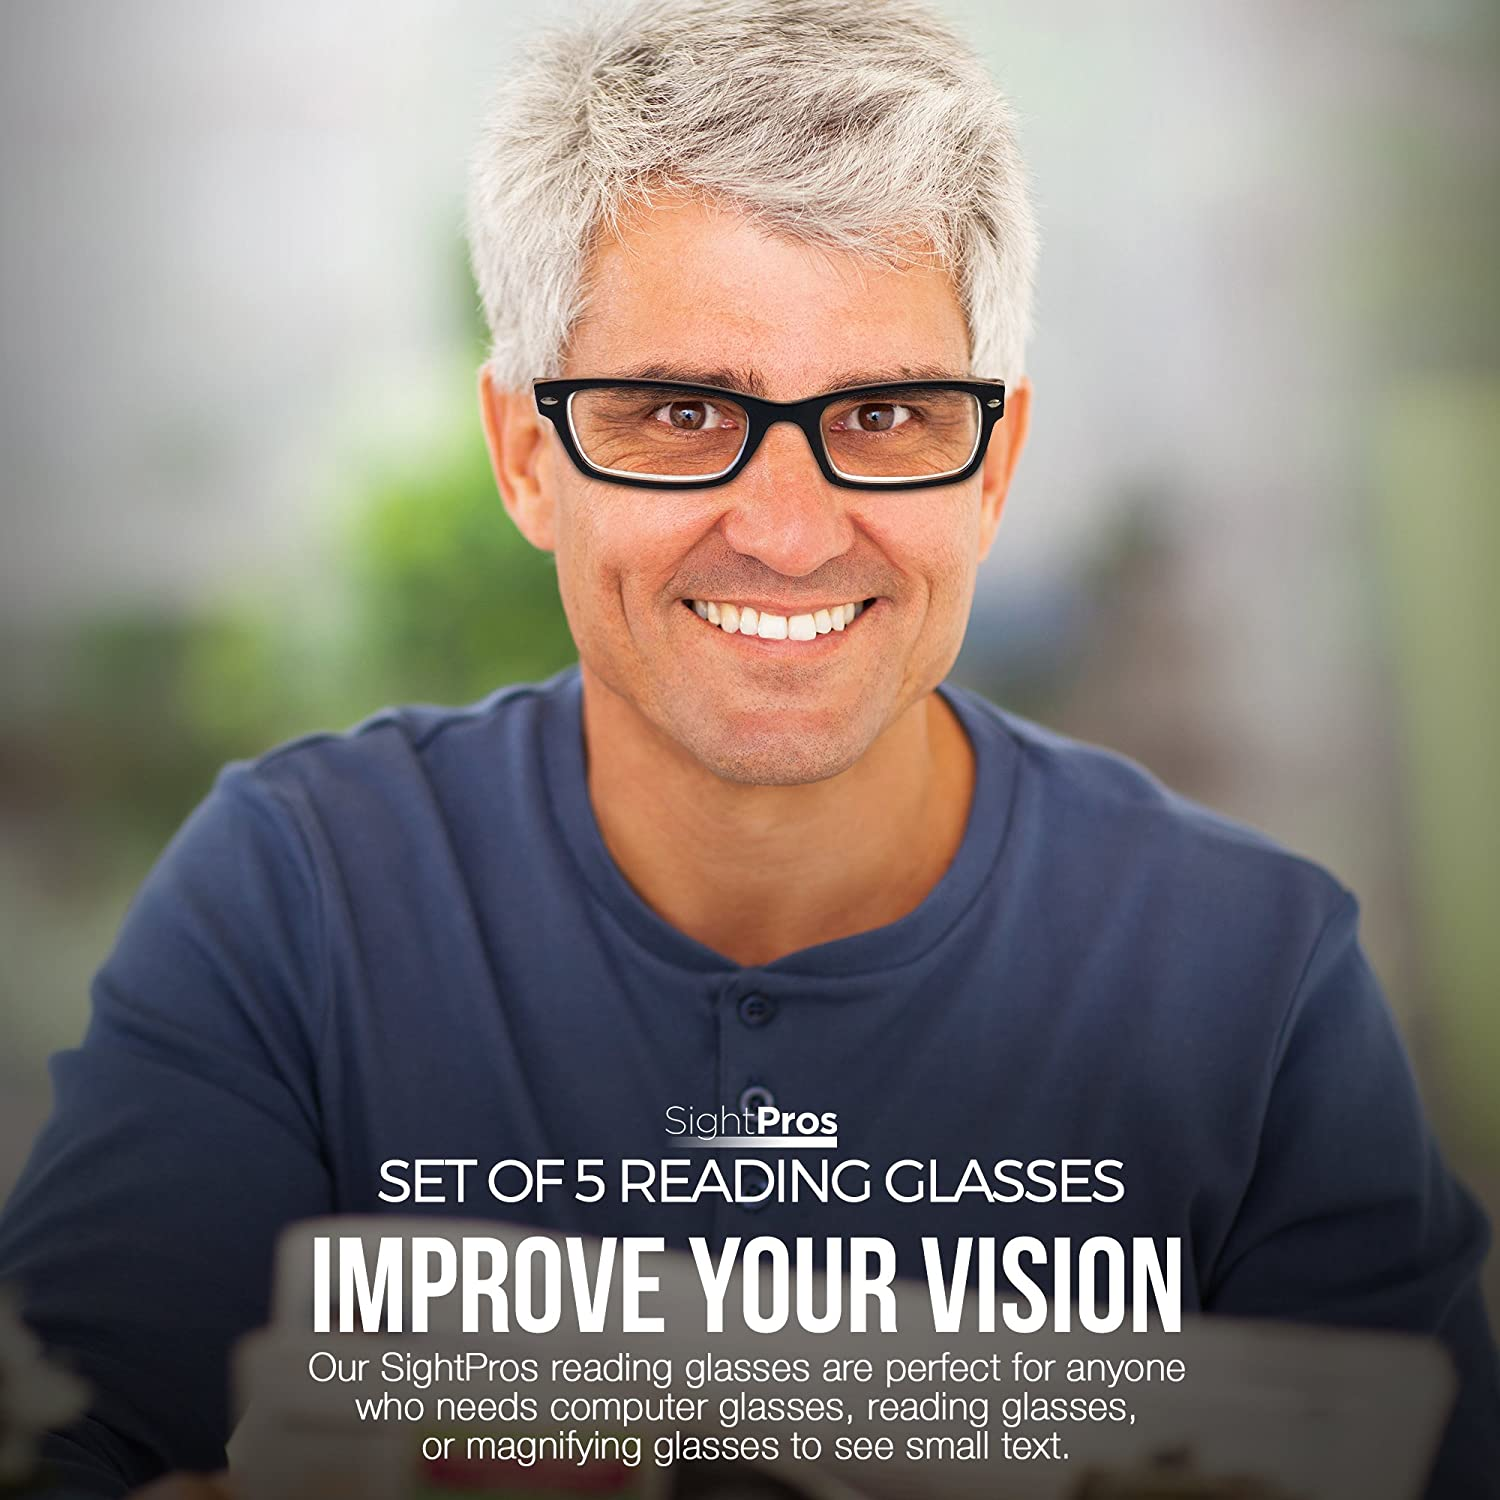 155e48d33ad5 Amazon.com  SightPros Reading Glasses - See Clearly up close -